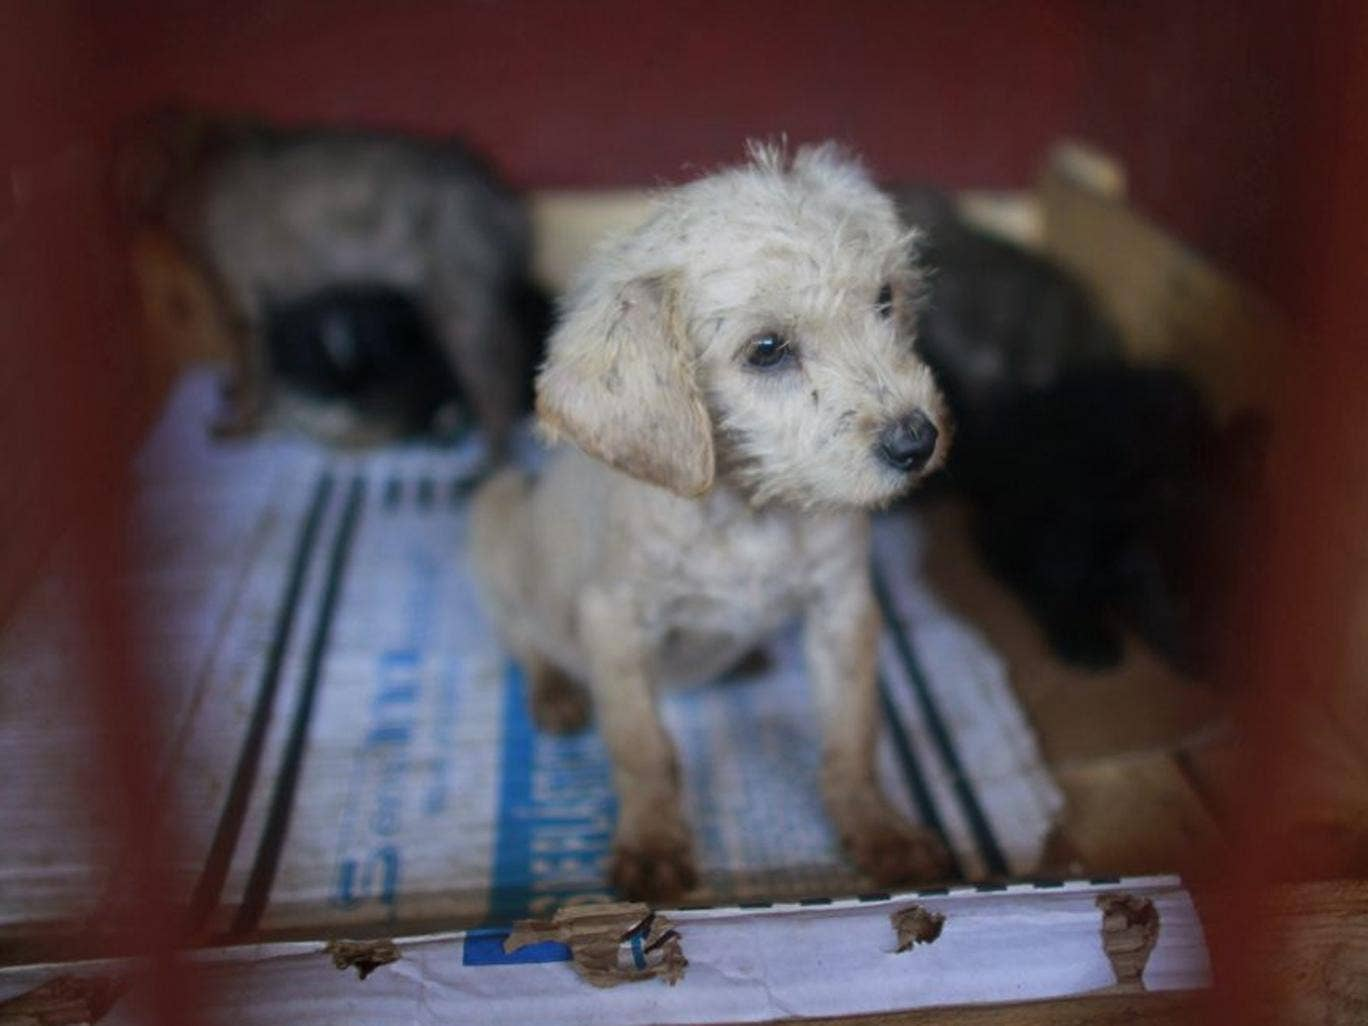 A litter of puppies that was caught near the site of fatal mauling at a  dog pound in Mexico City